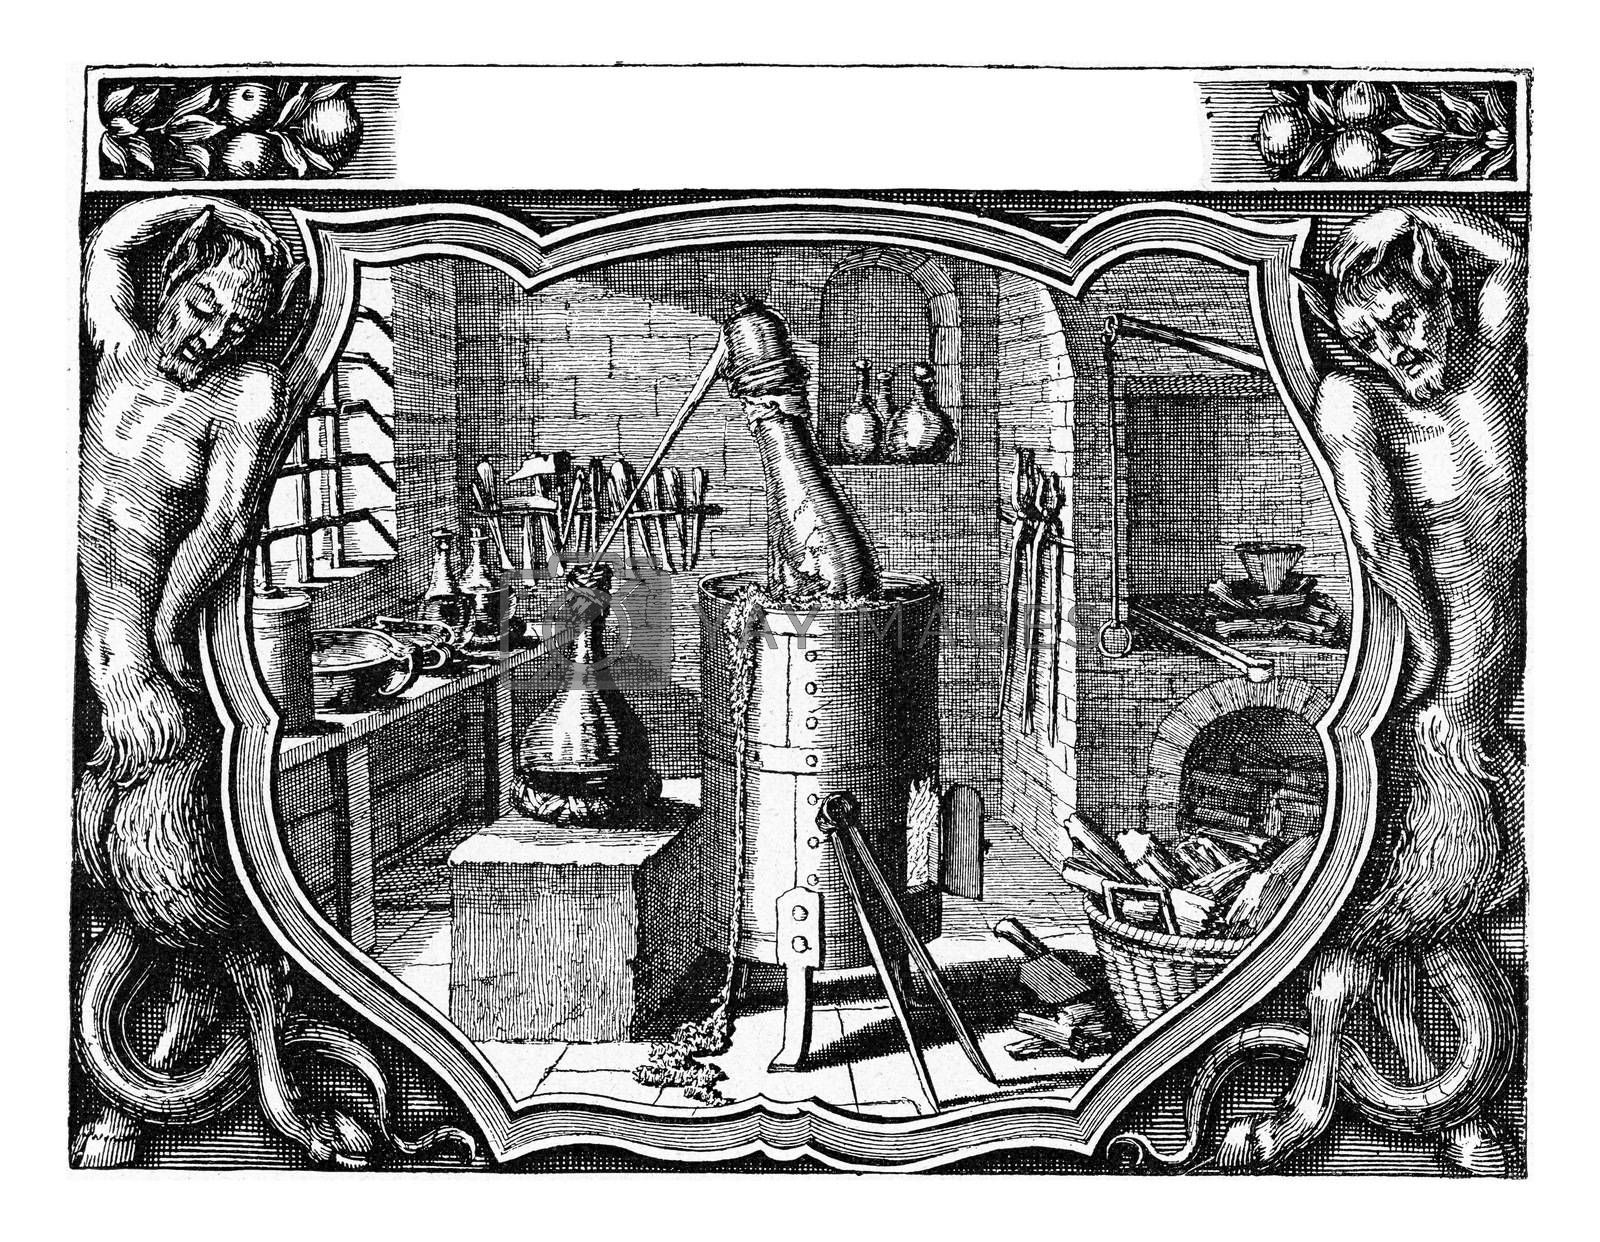 Chemical laboratory of Michel Kusel in 1663, vintage engraved illustration. From the Universe and Humanity, 1910.